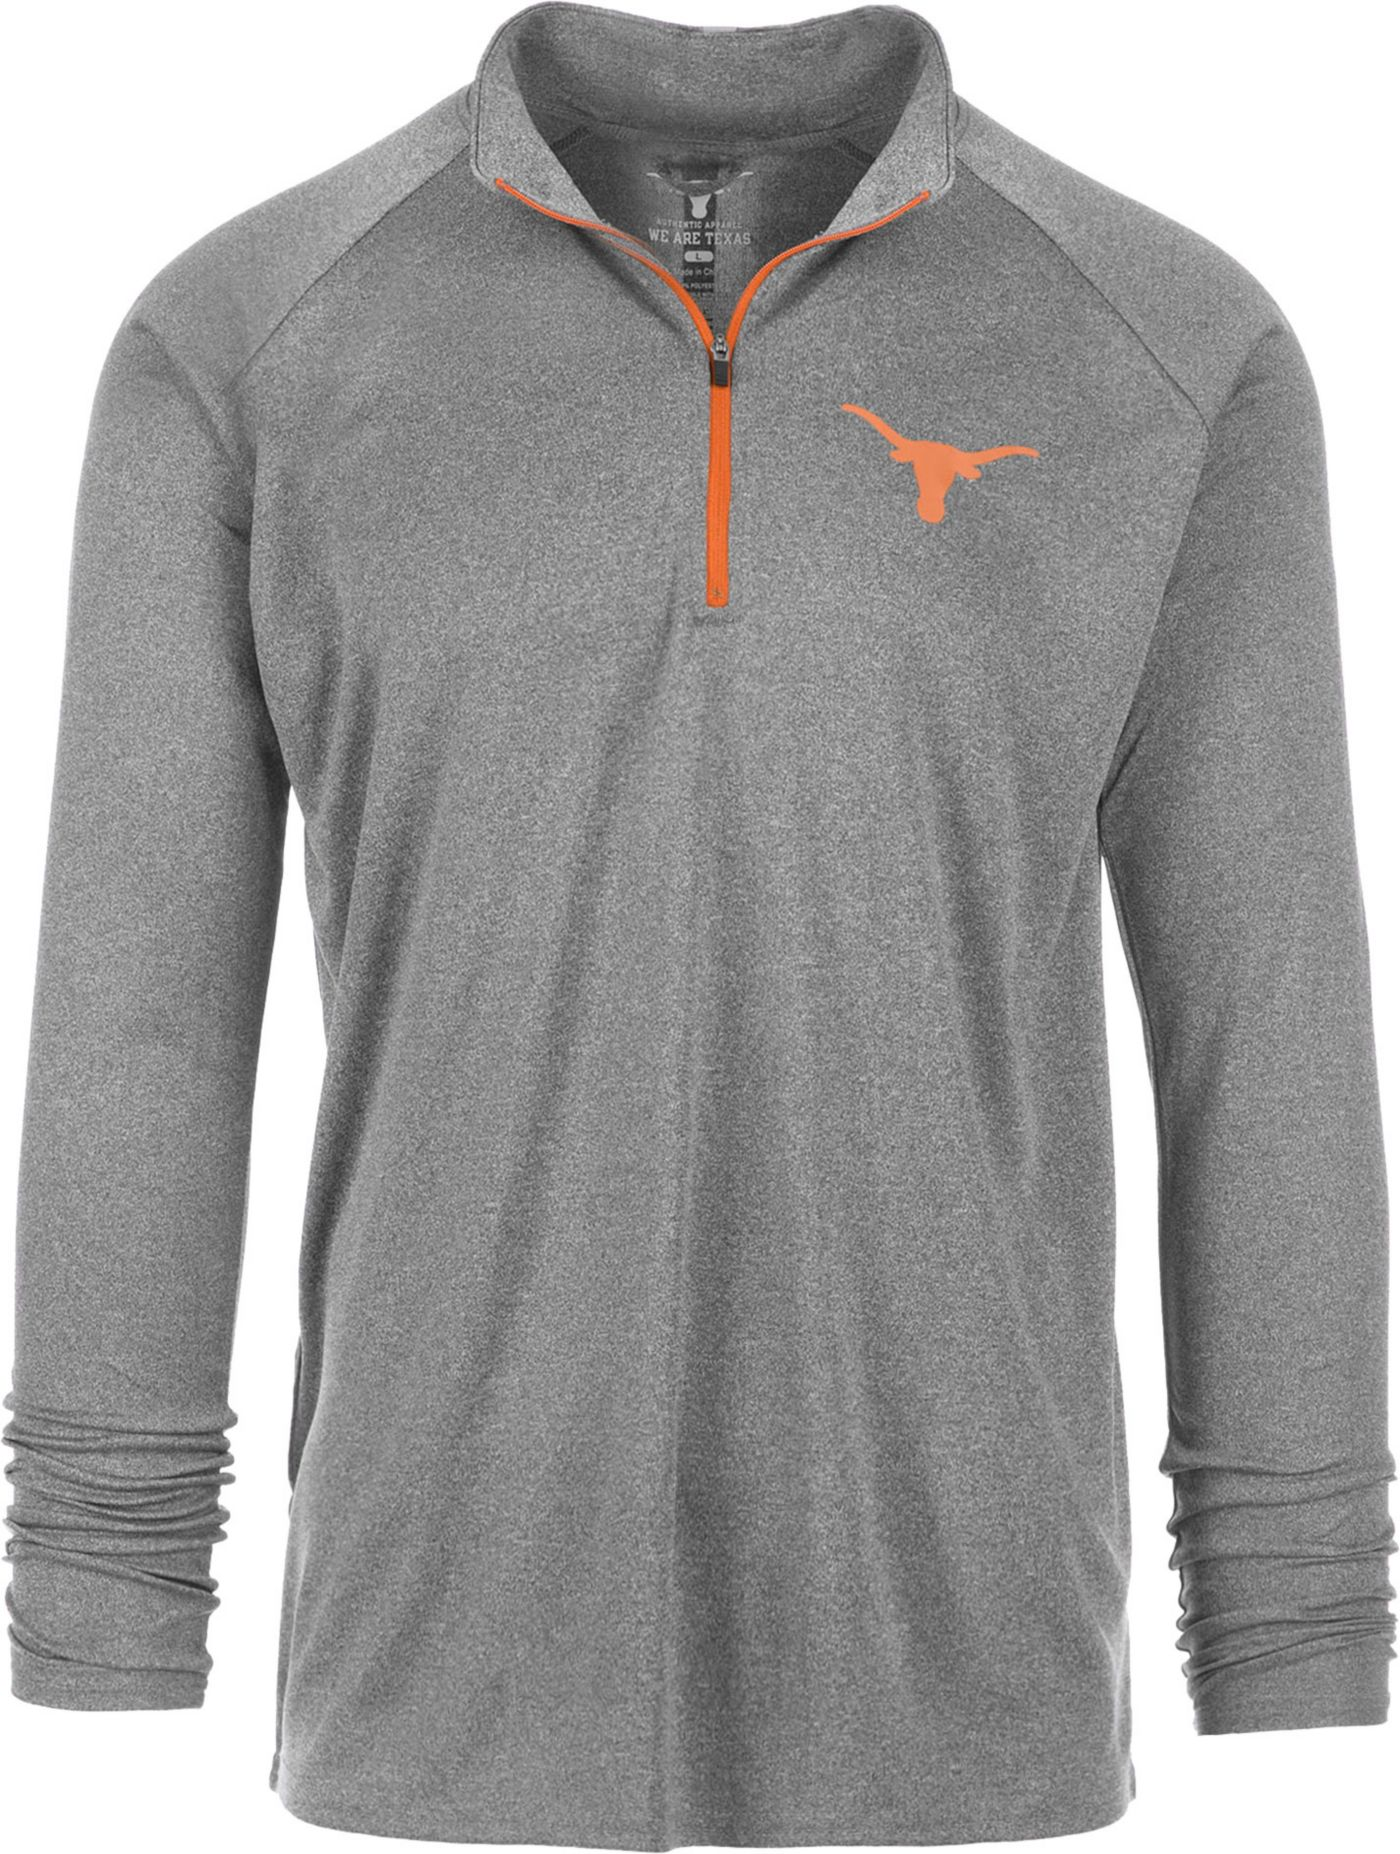 University of Texas Authentic Apparel Men's Texas Longhorns Grey River Quarter-Zip Shirt